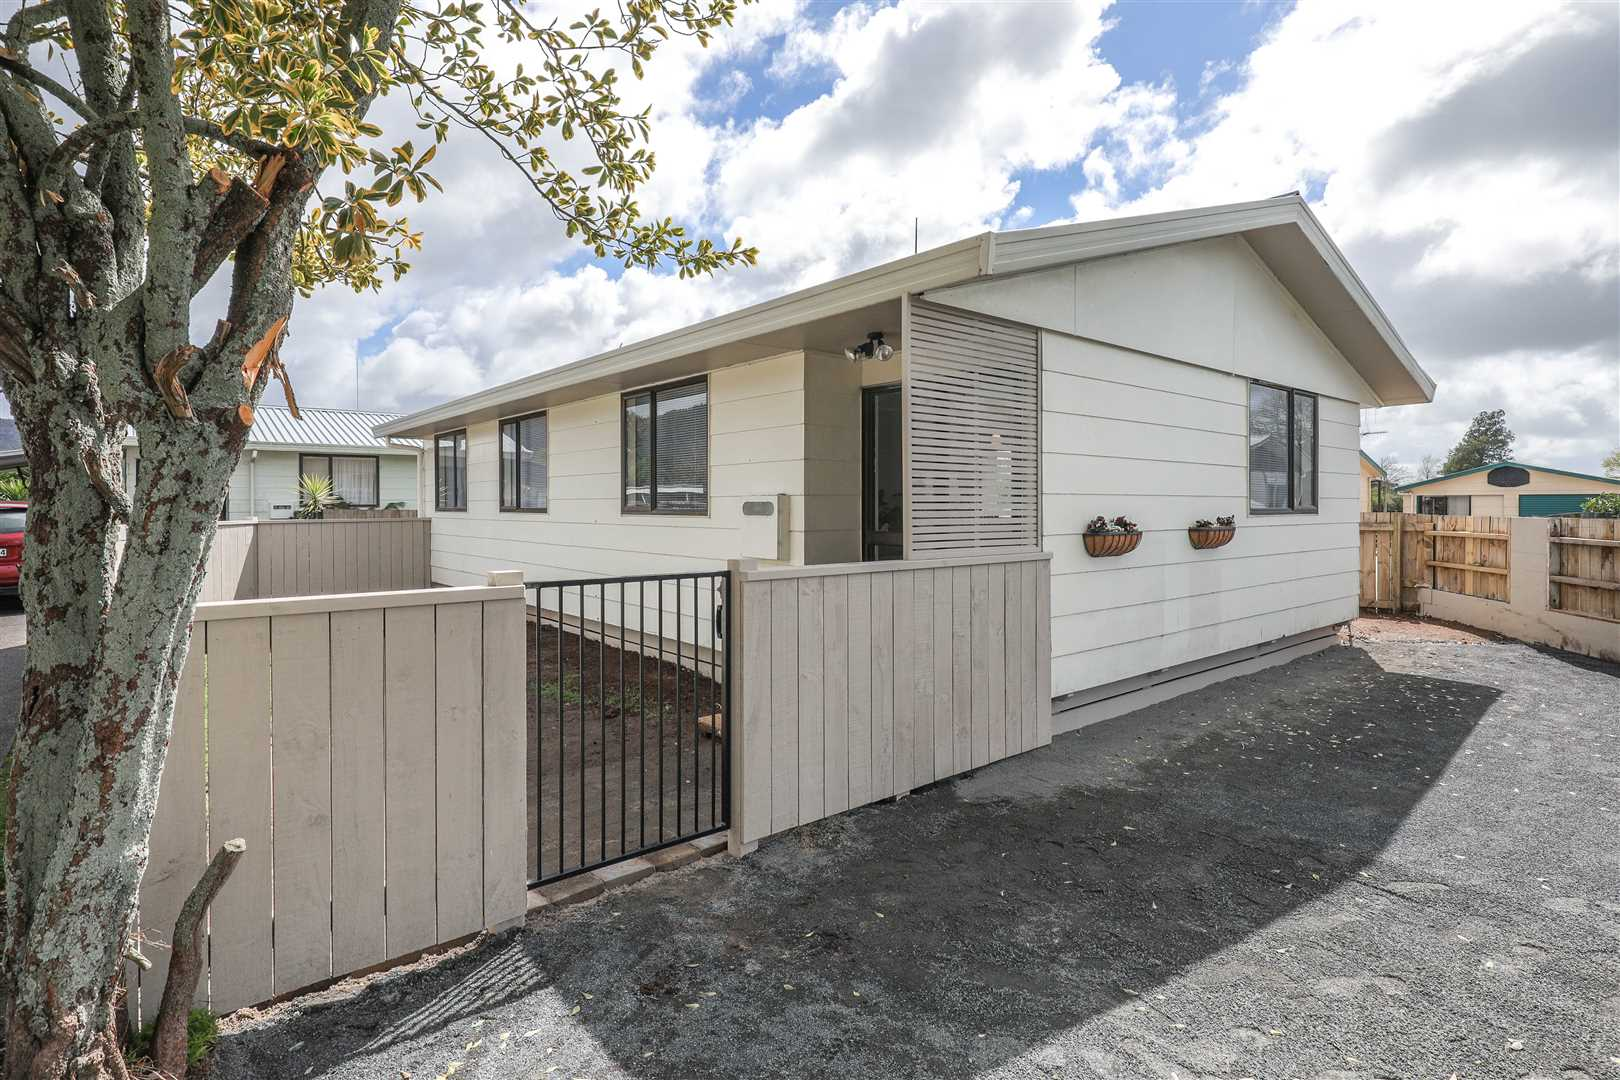 This home is under $400,000